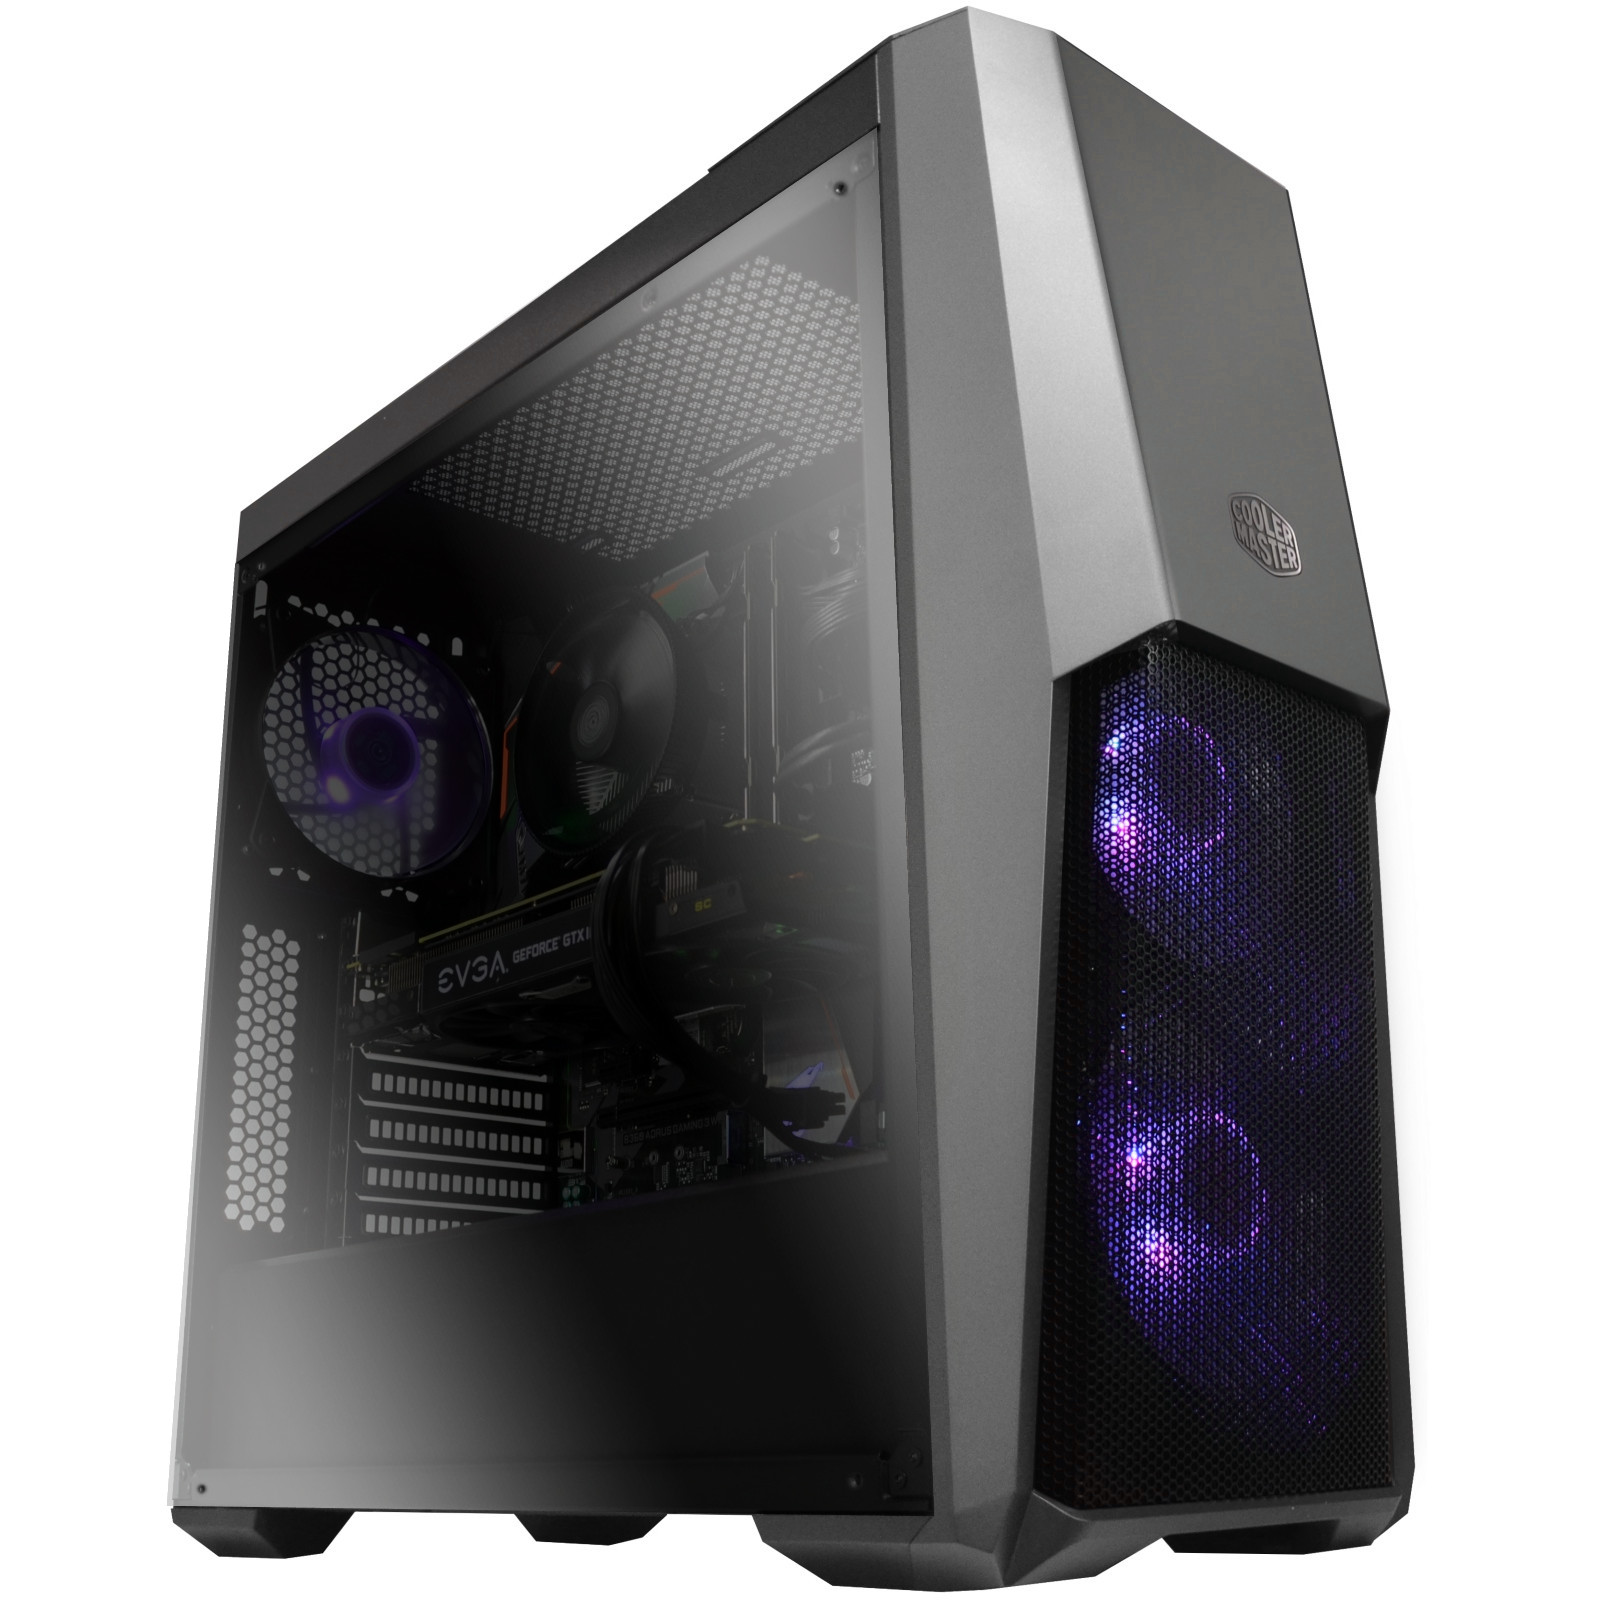 GGPC Warlock GTX 1070 Ti Gaming PC